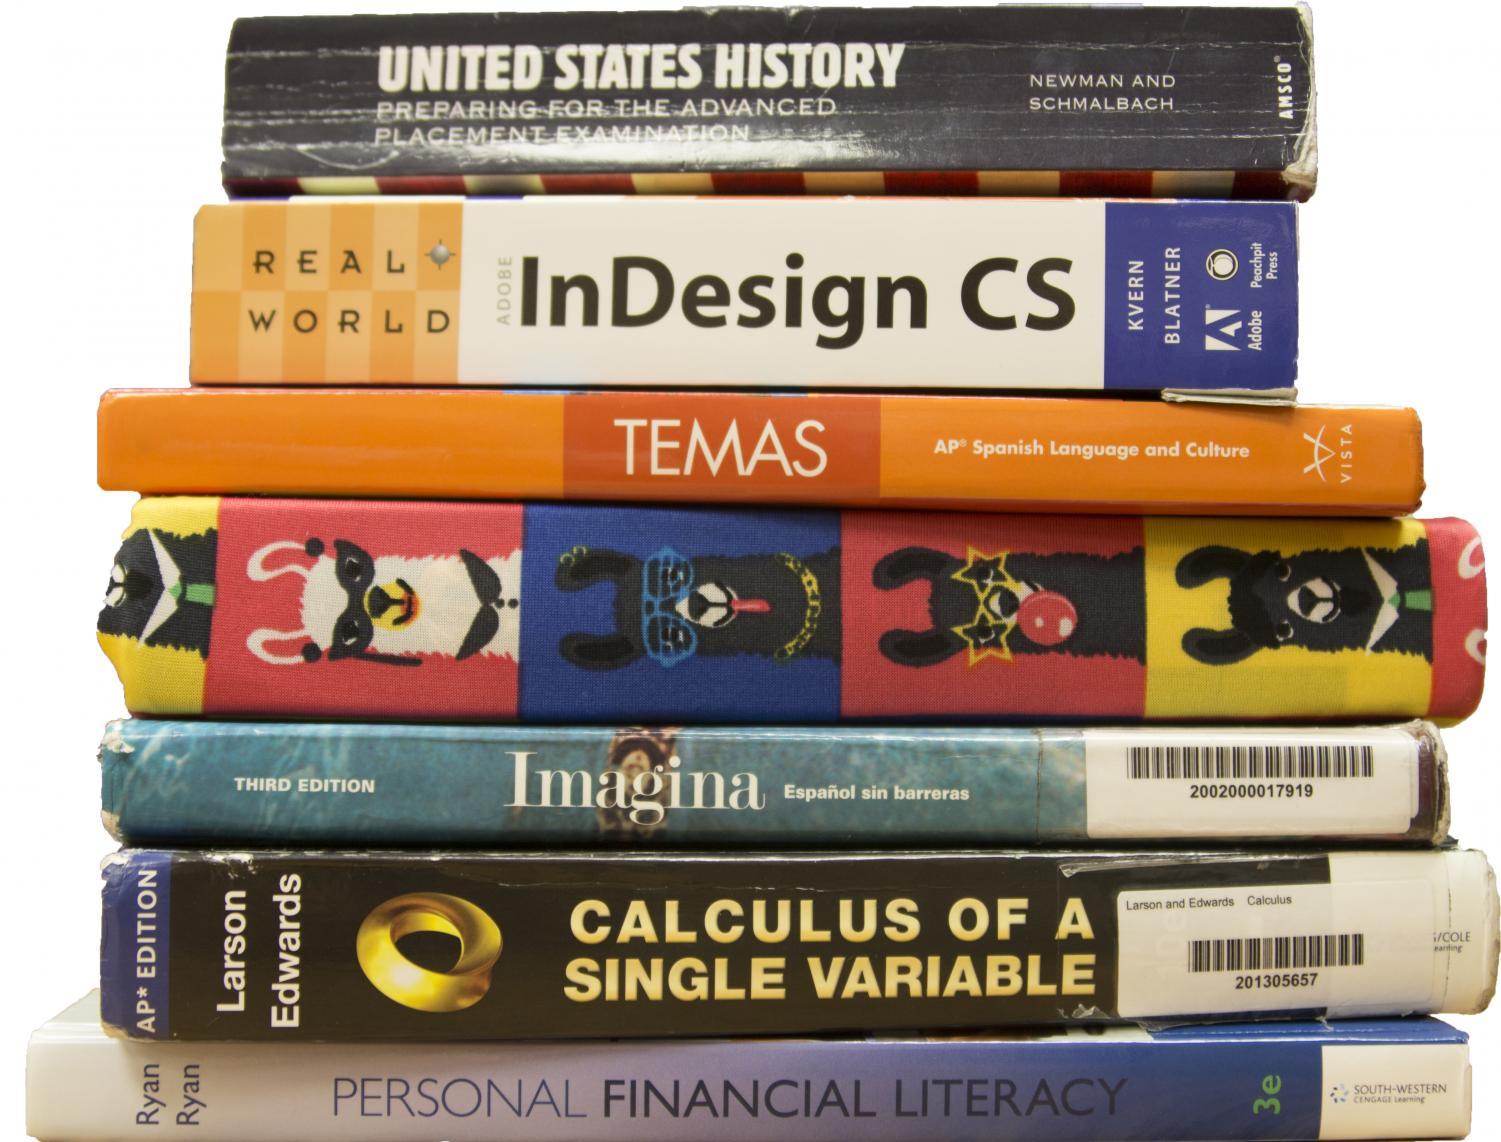 A number of different textbooks that students study from to prepare for finals.